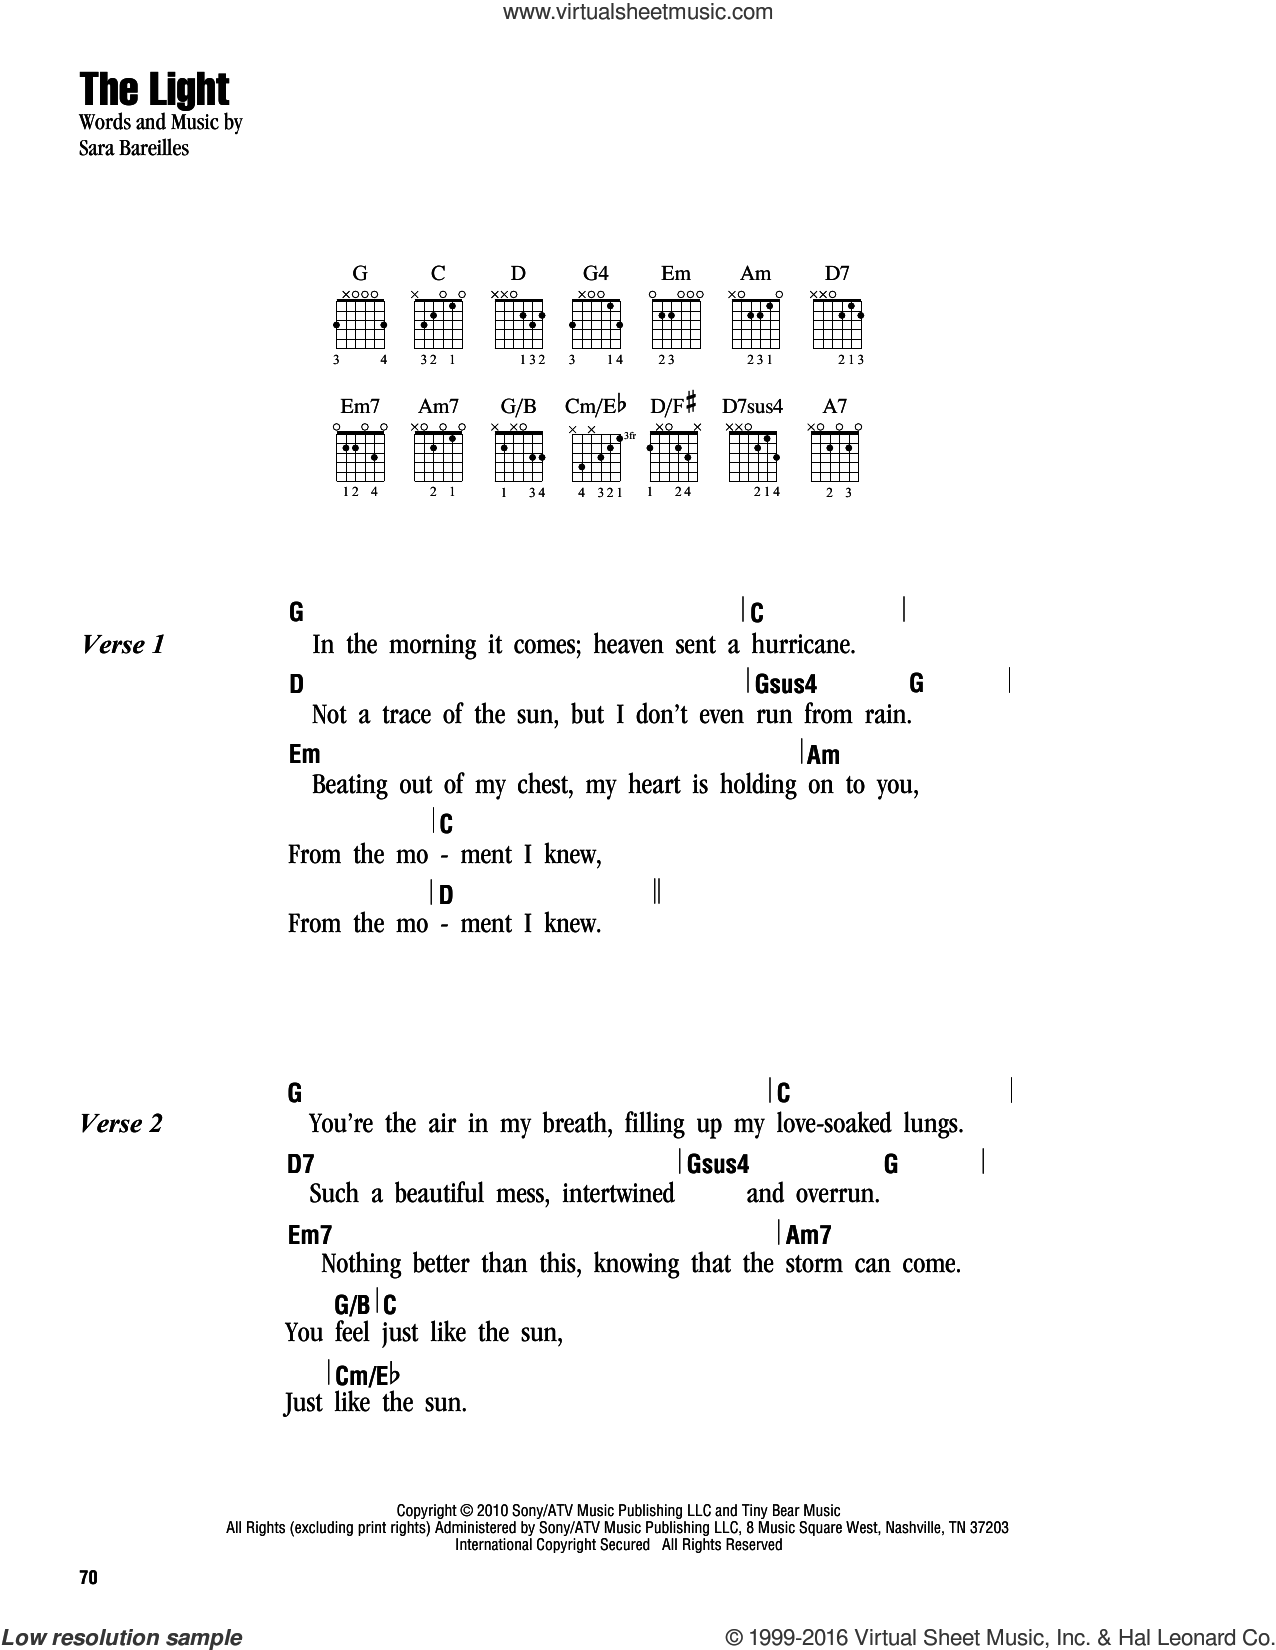 The Light sheet music for guitar (chords) by Sara Bareilles, intermediate skill level